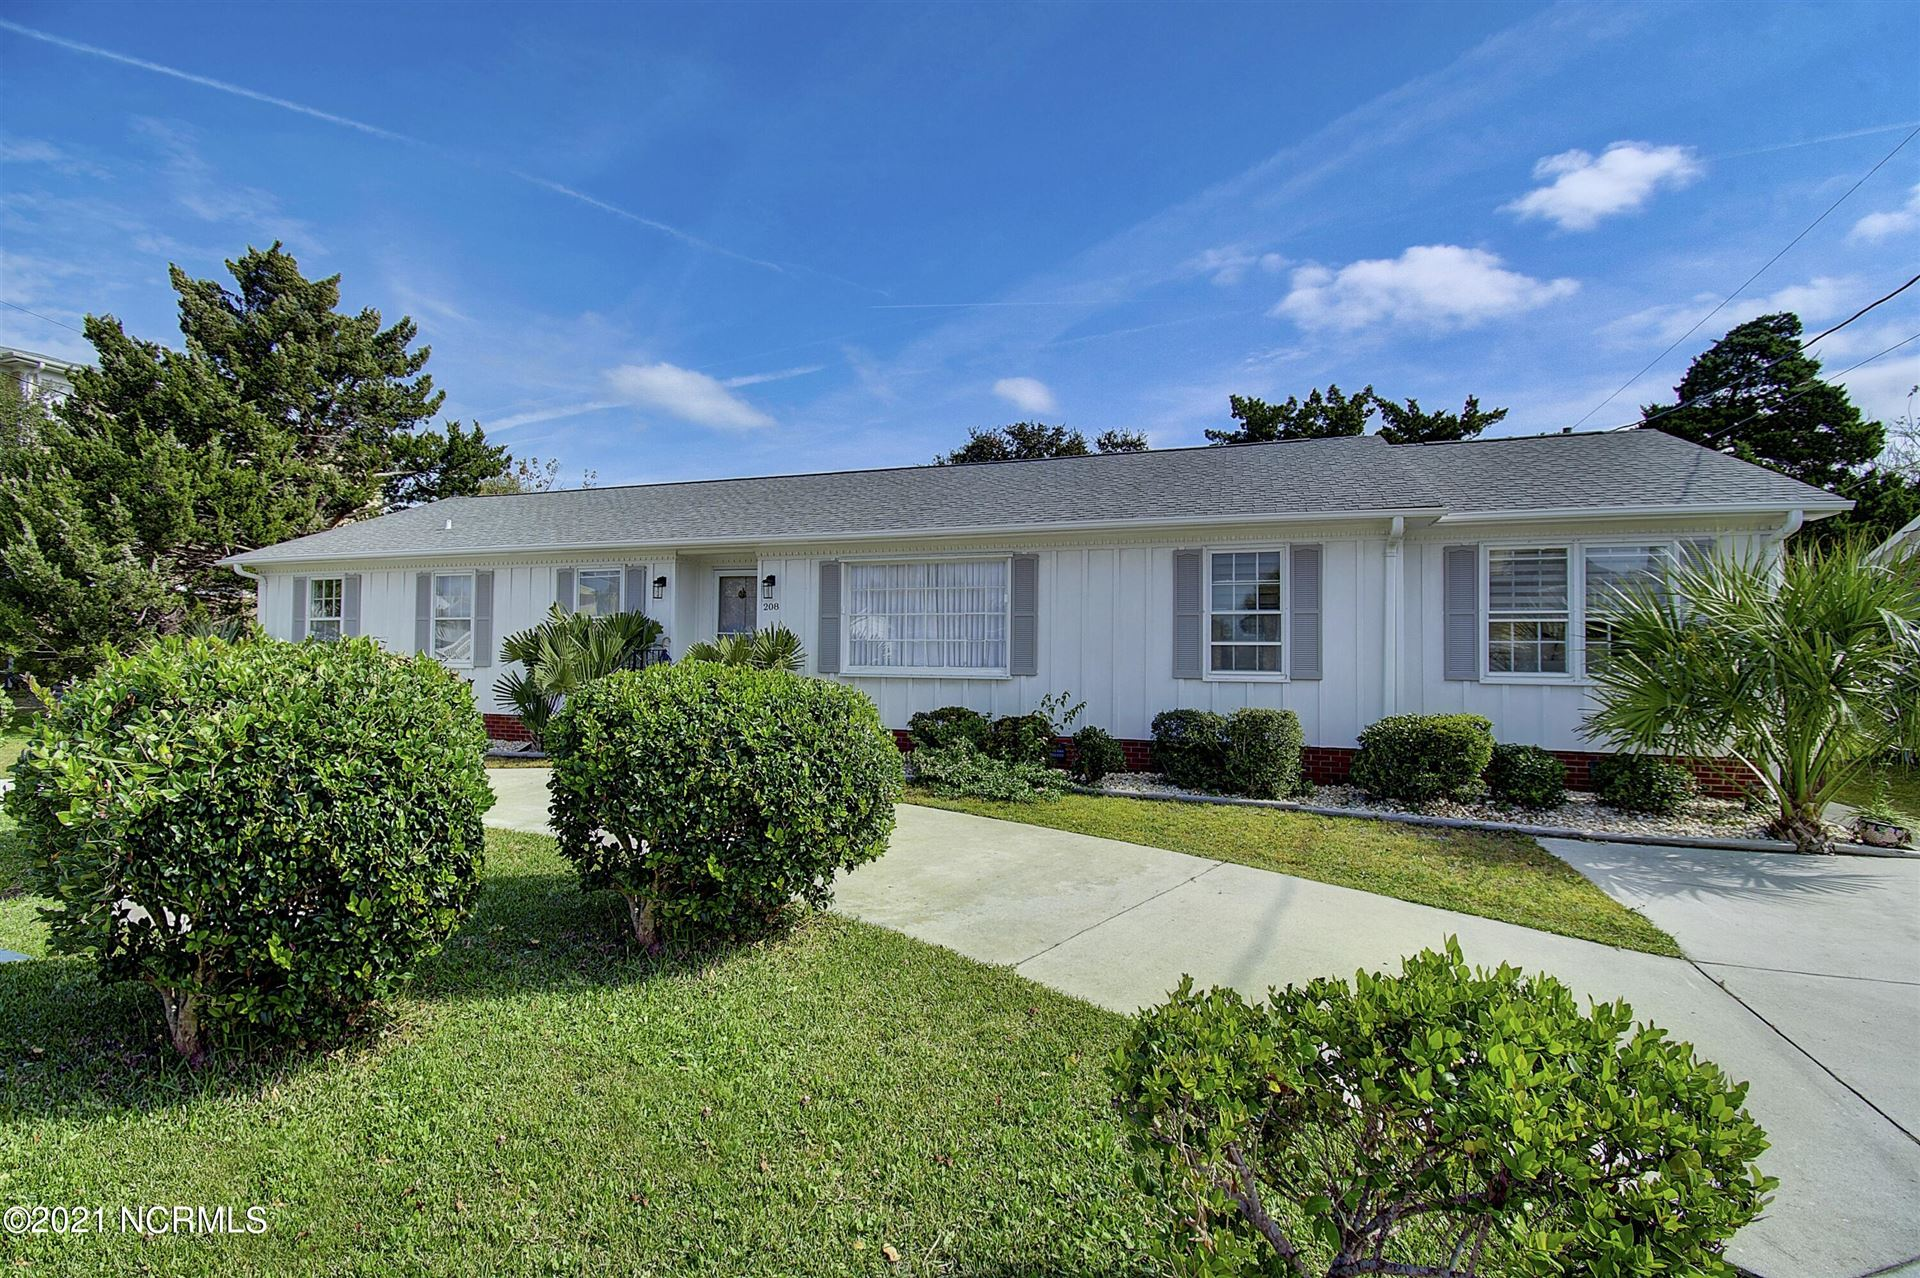 Photo of 208 Coral Drive, Wrightsville Beach, NC 28480 (MLS # 100293587)